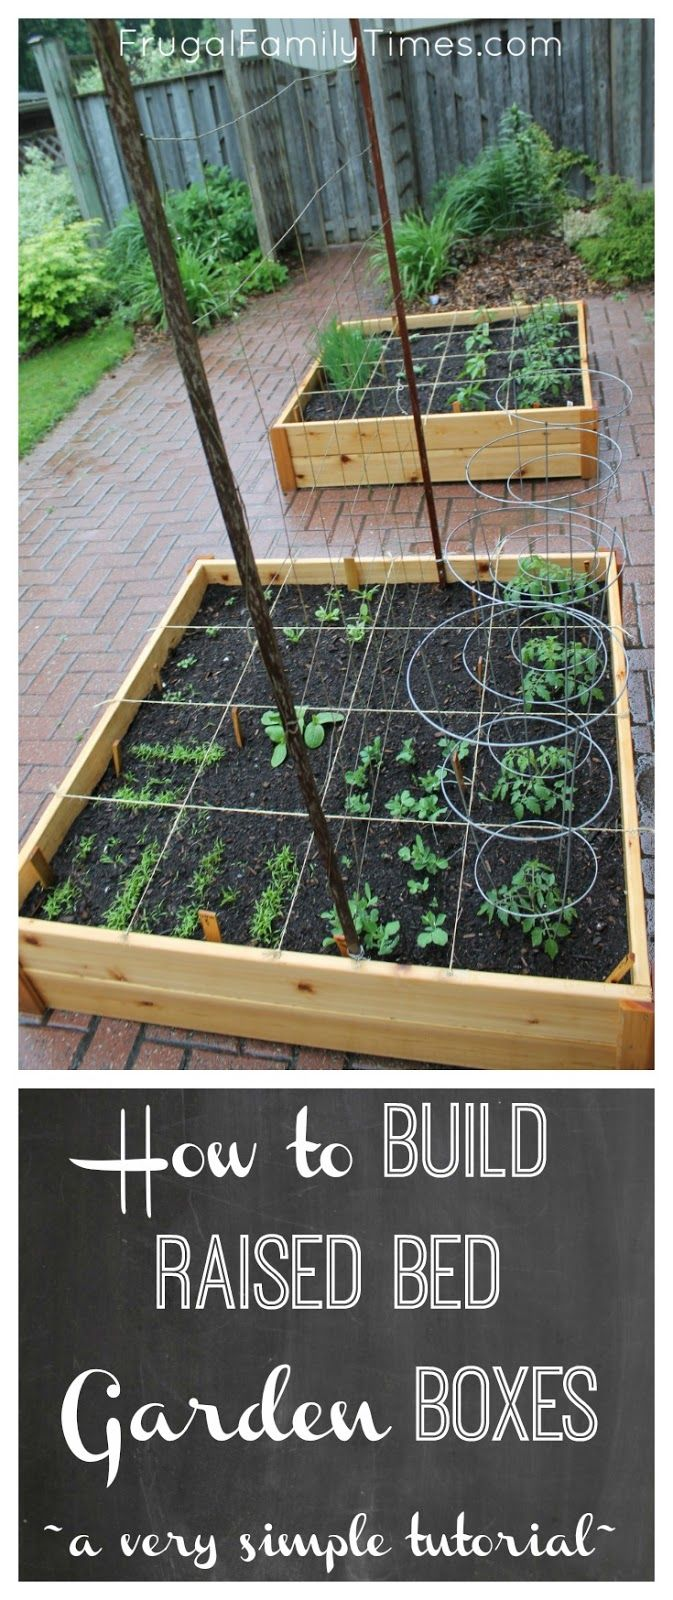 How to build simple raised garden beds a cheap and easy for Raised vegetable garden bed designs